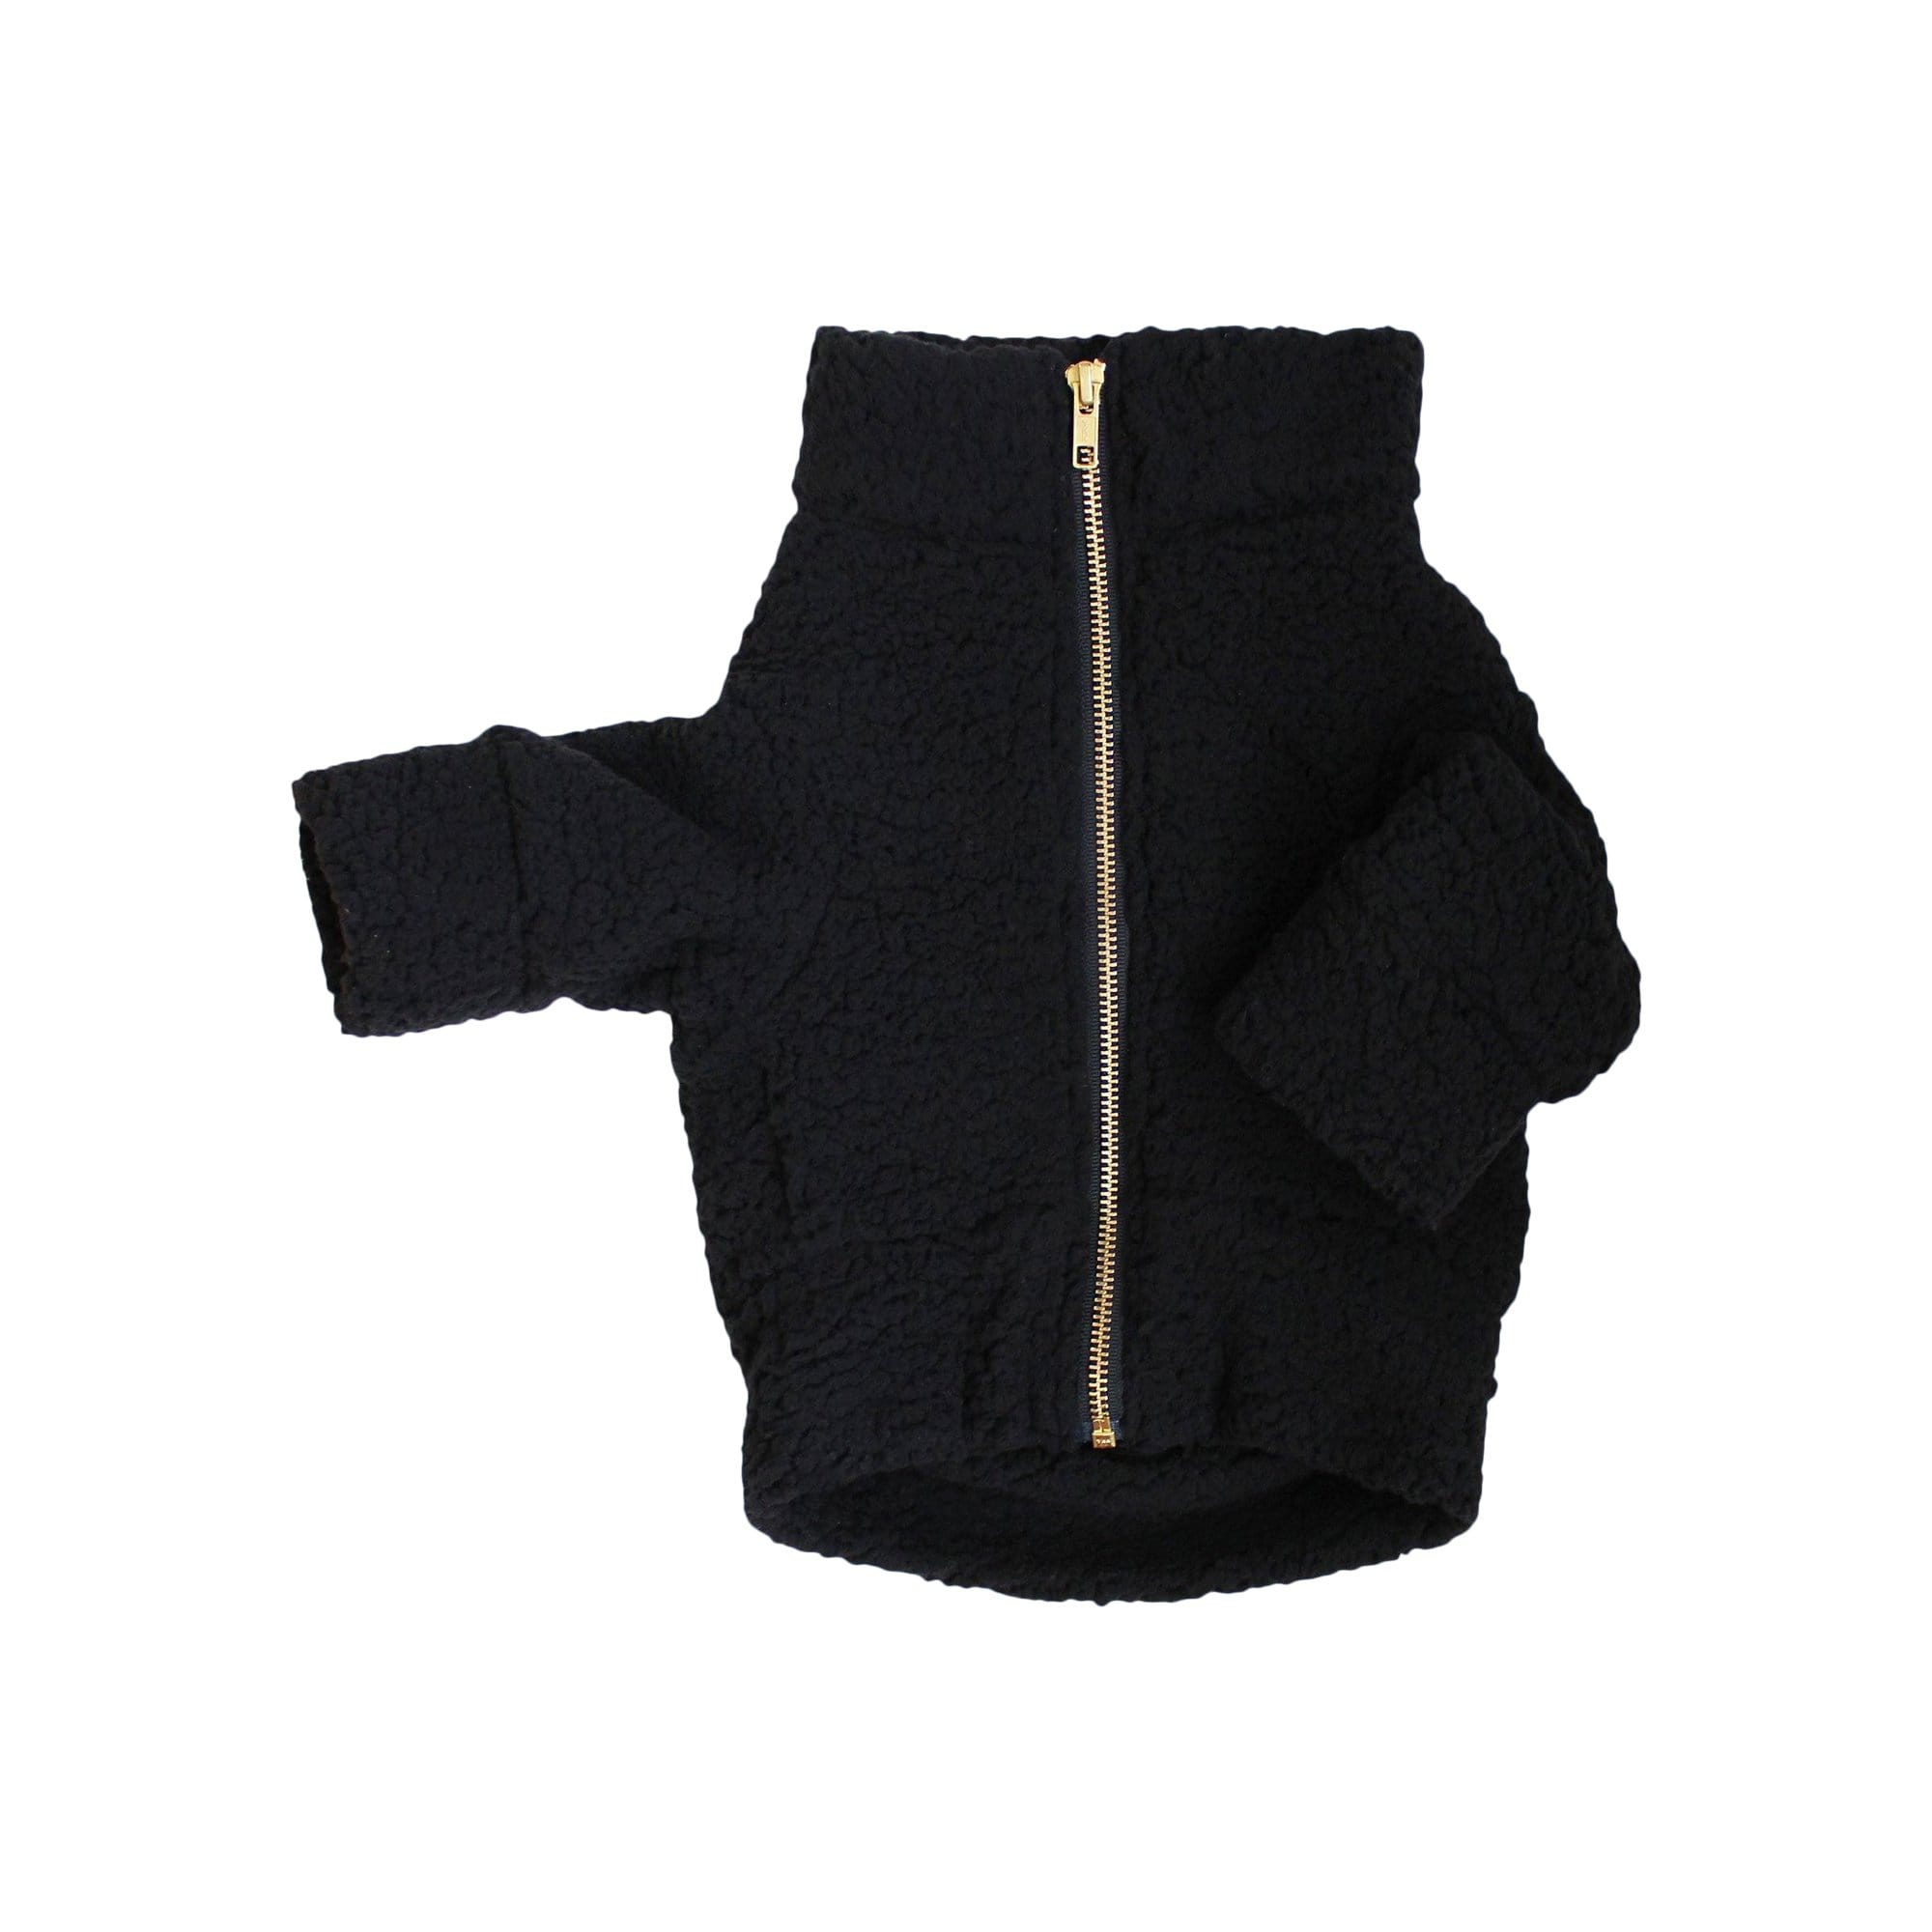 Dog Threads Coats + Jackets Onyx Teddy Jacket